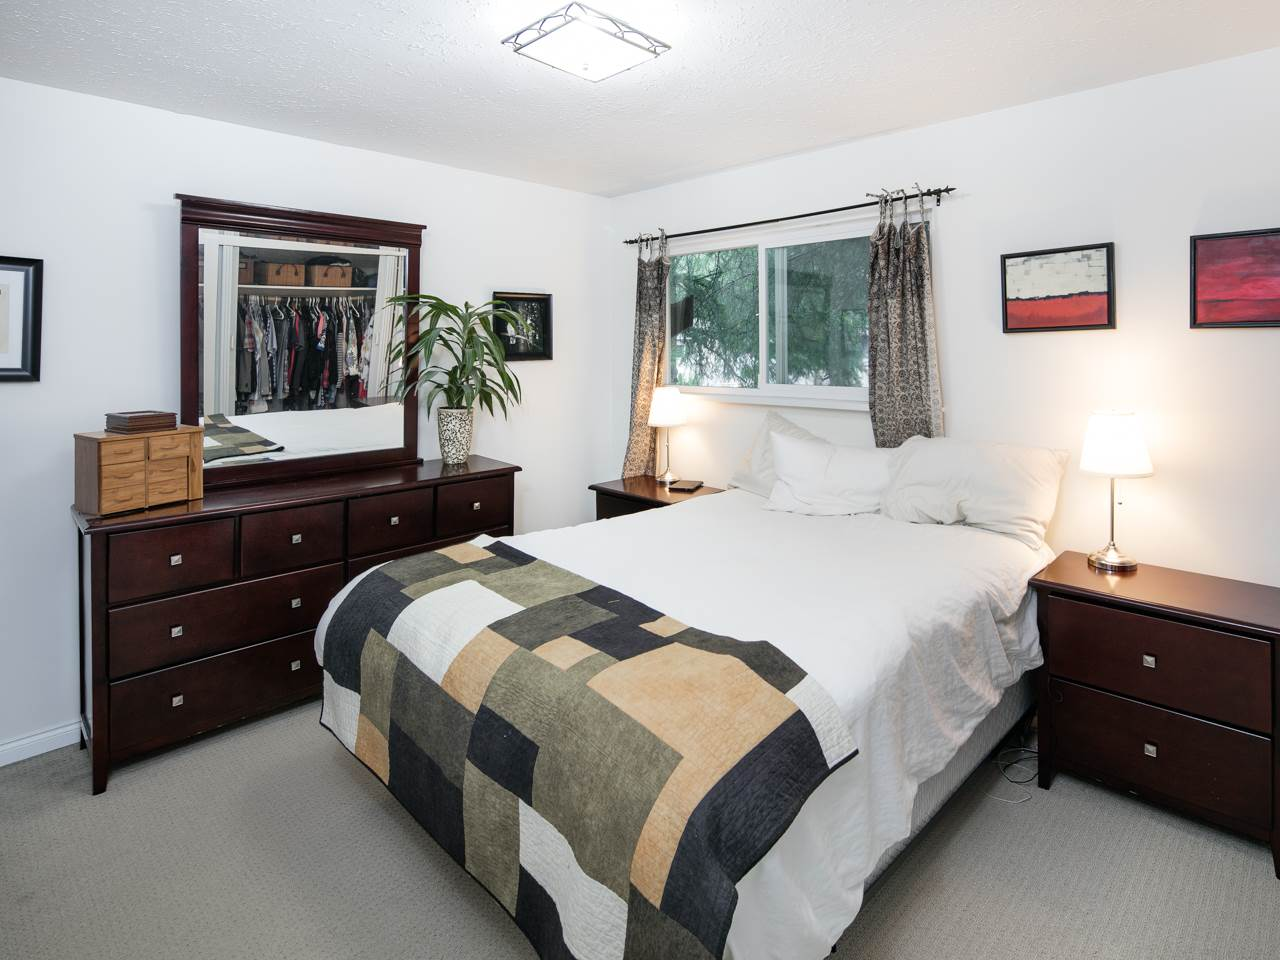 Photo 11: 9670 139 Street in Surrey: Whalley House for sale (North Surrey)  : MLS(r) # R2111998